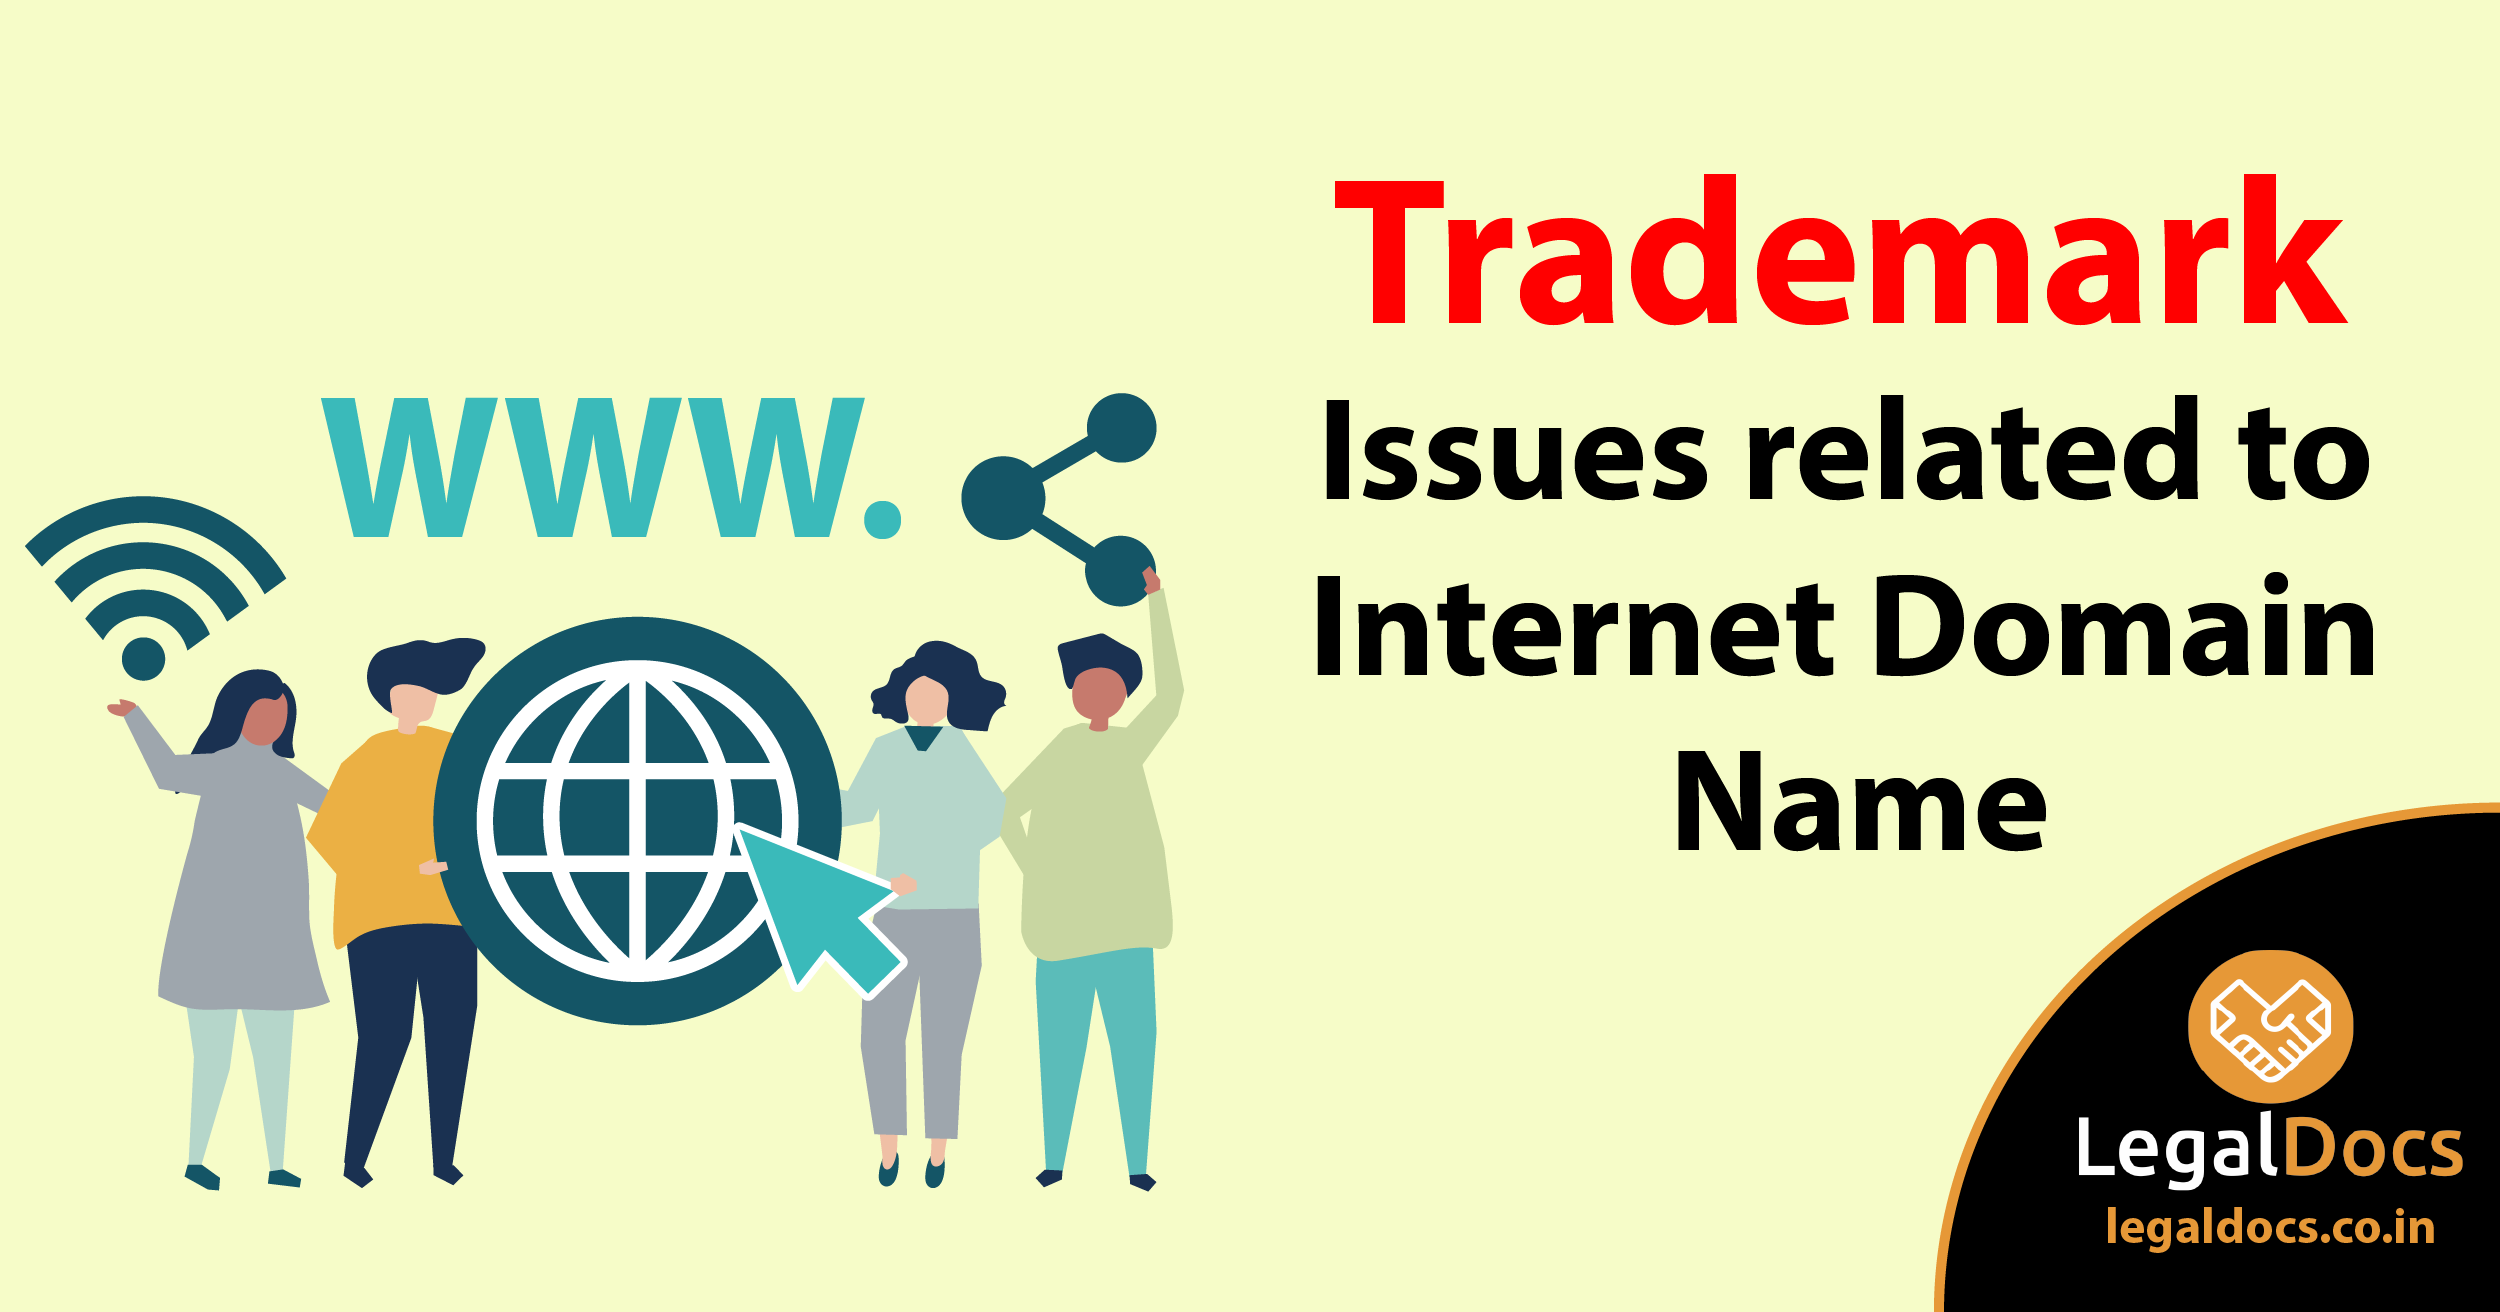 Trademark Issues related to Internet Domain Name - LegalDocs